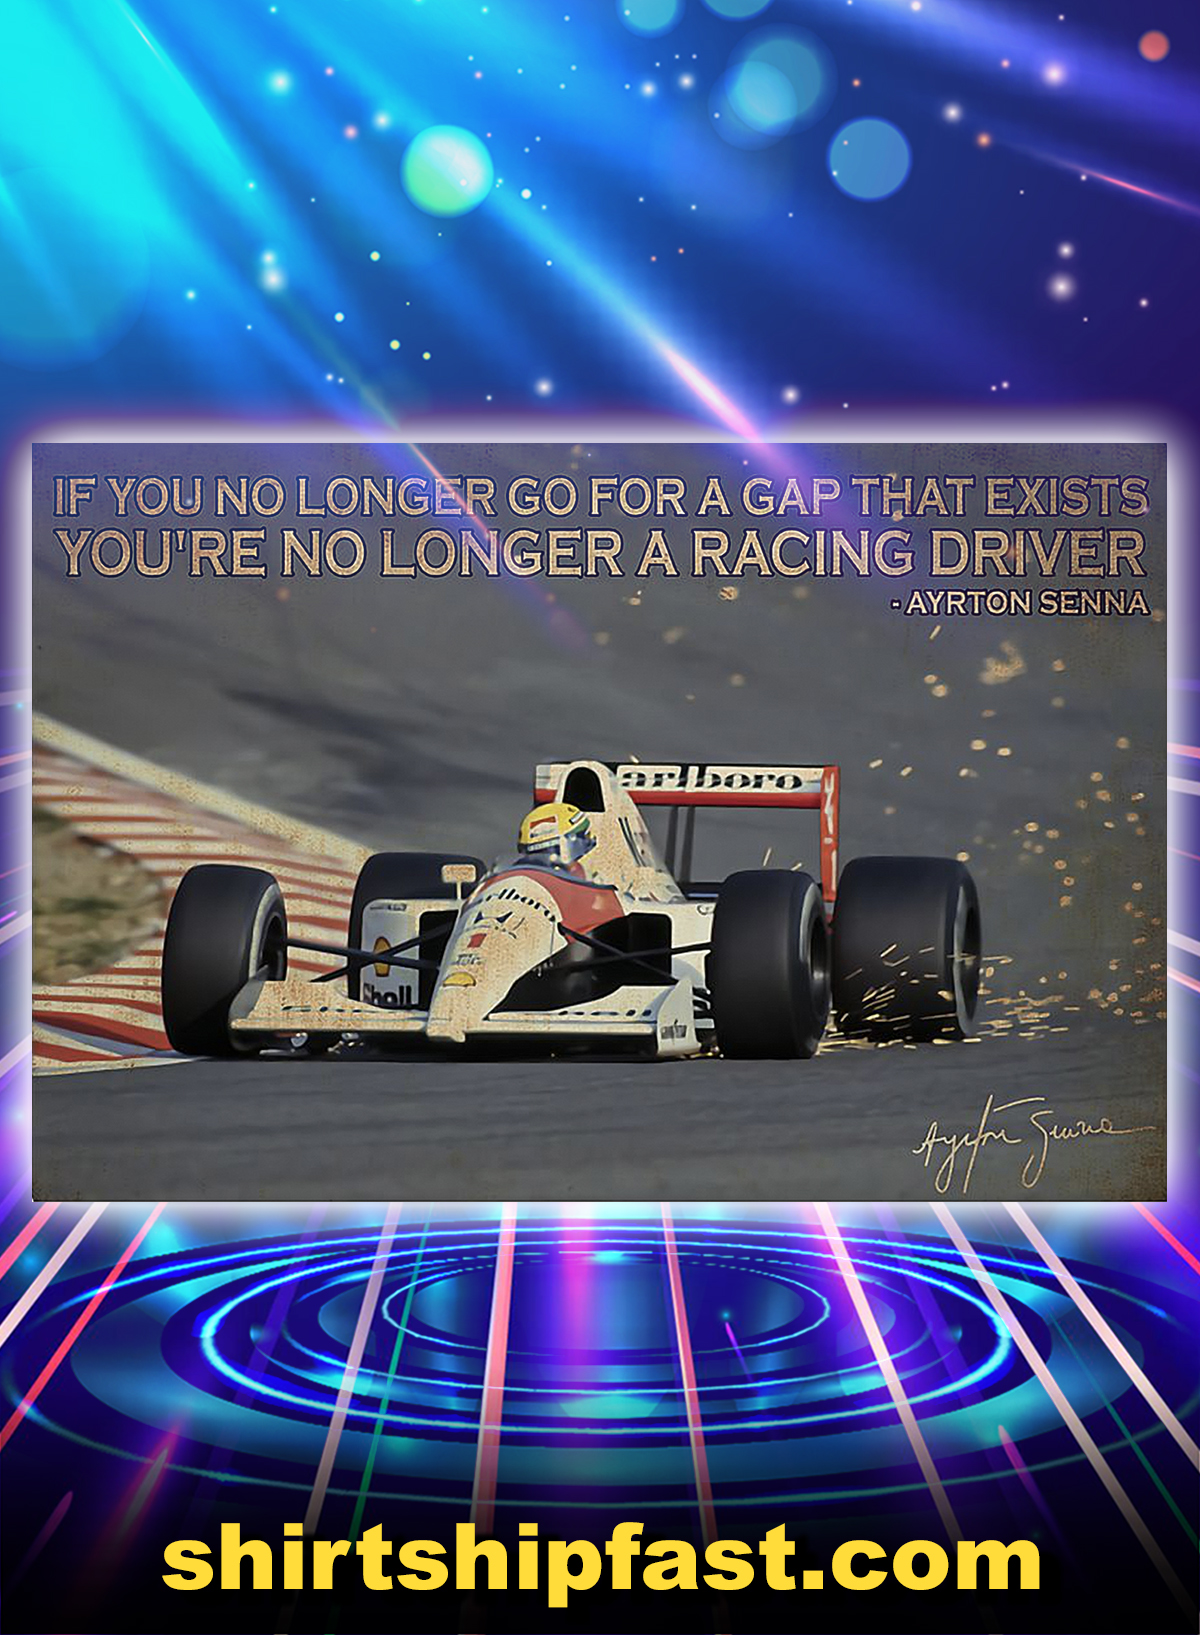 Ayrton Senna if you no longer go for a gap that exists you're no longer a racing driver poster - A4